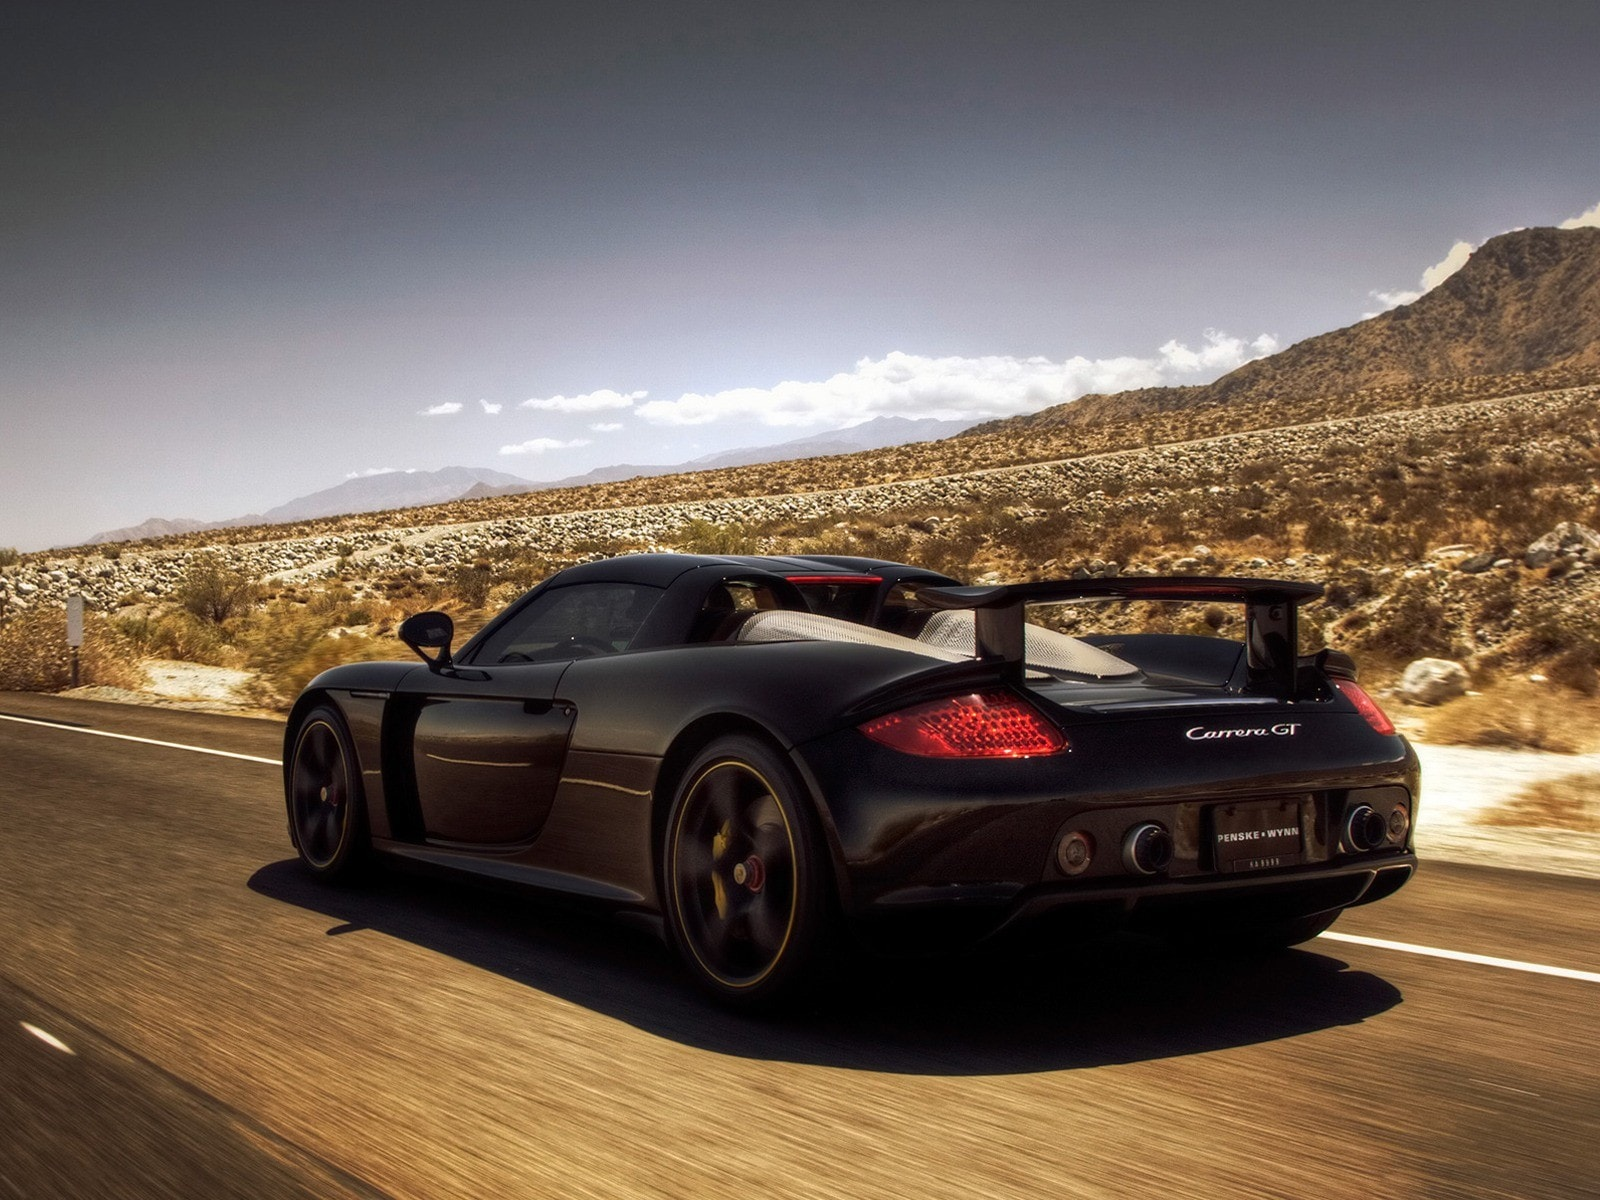 Porsche Carrera GT Full hd wallpapers